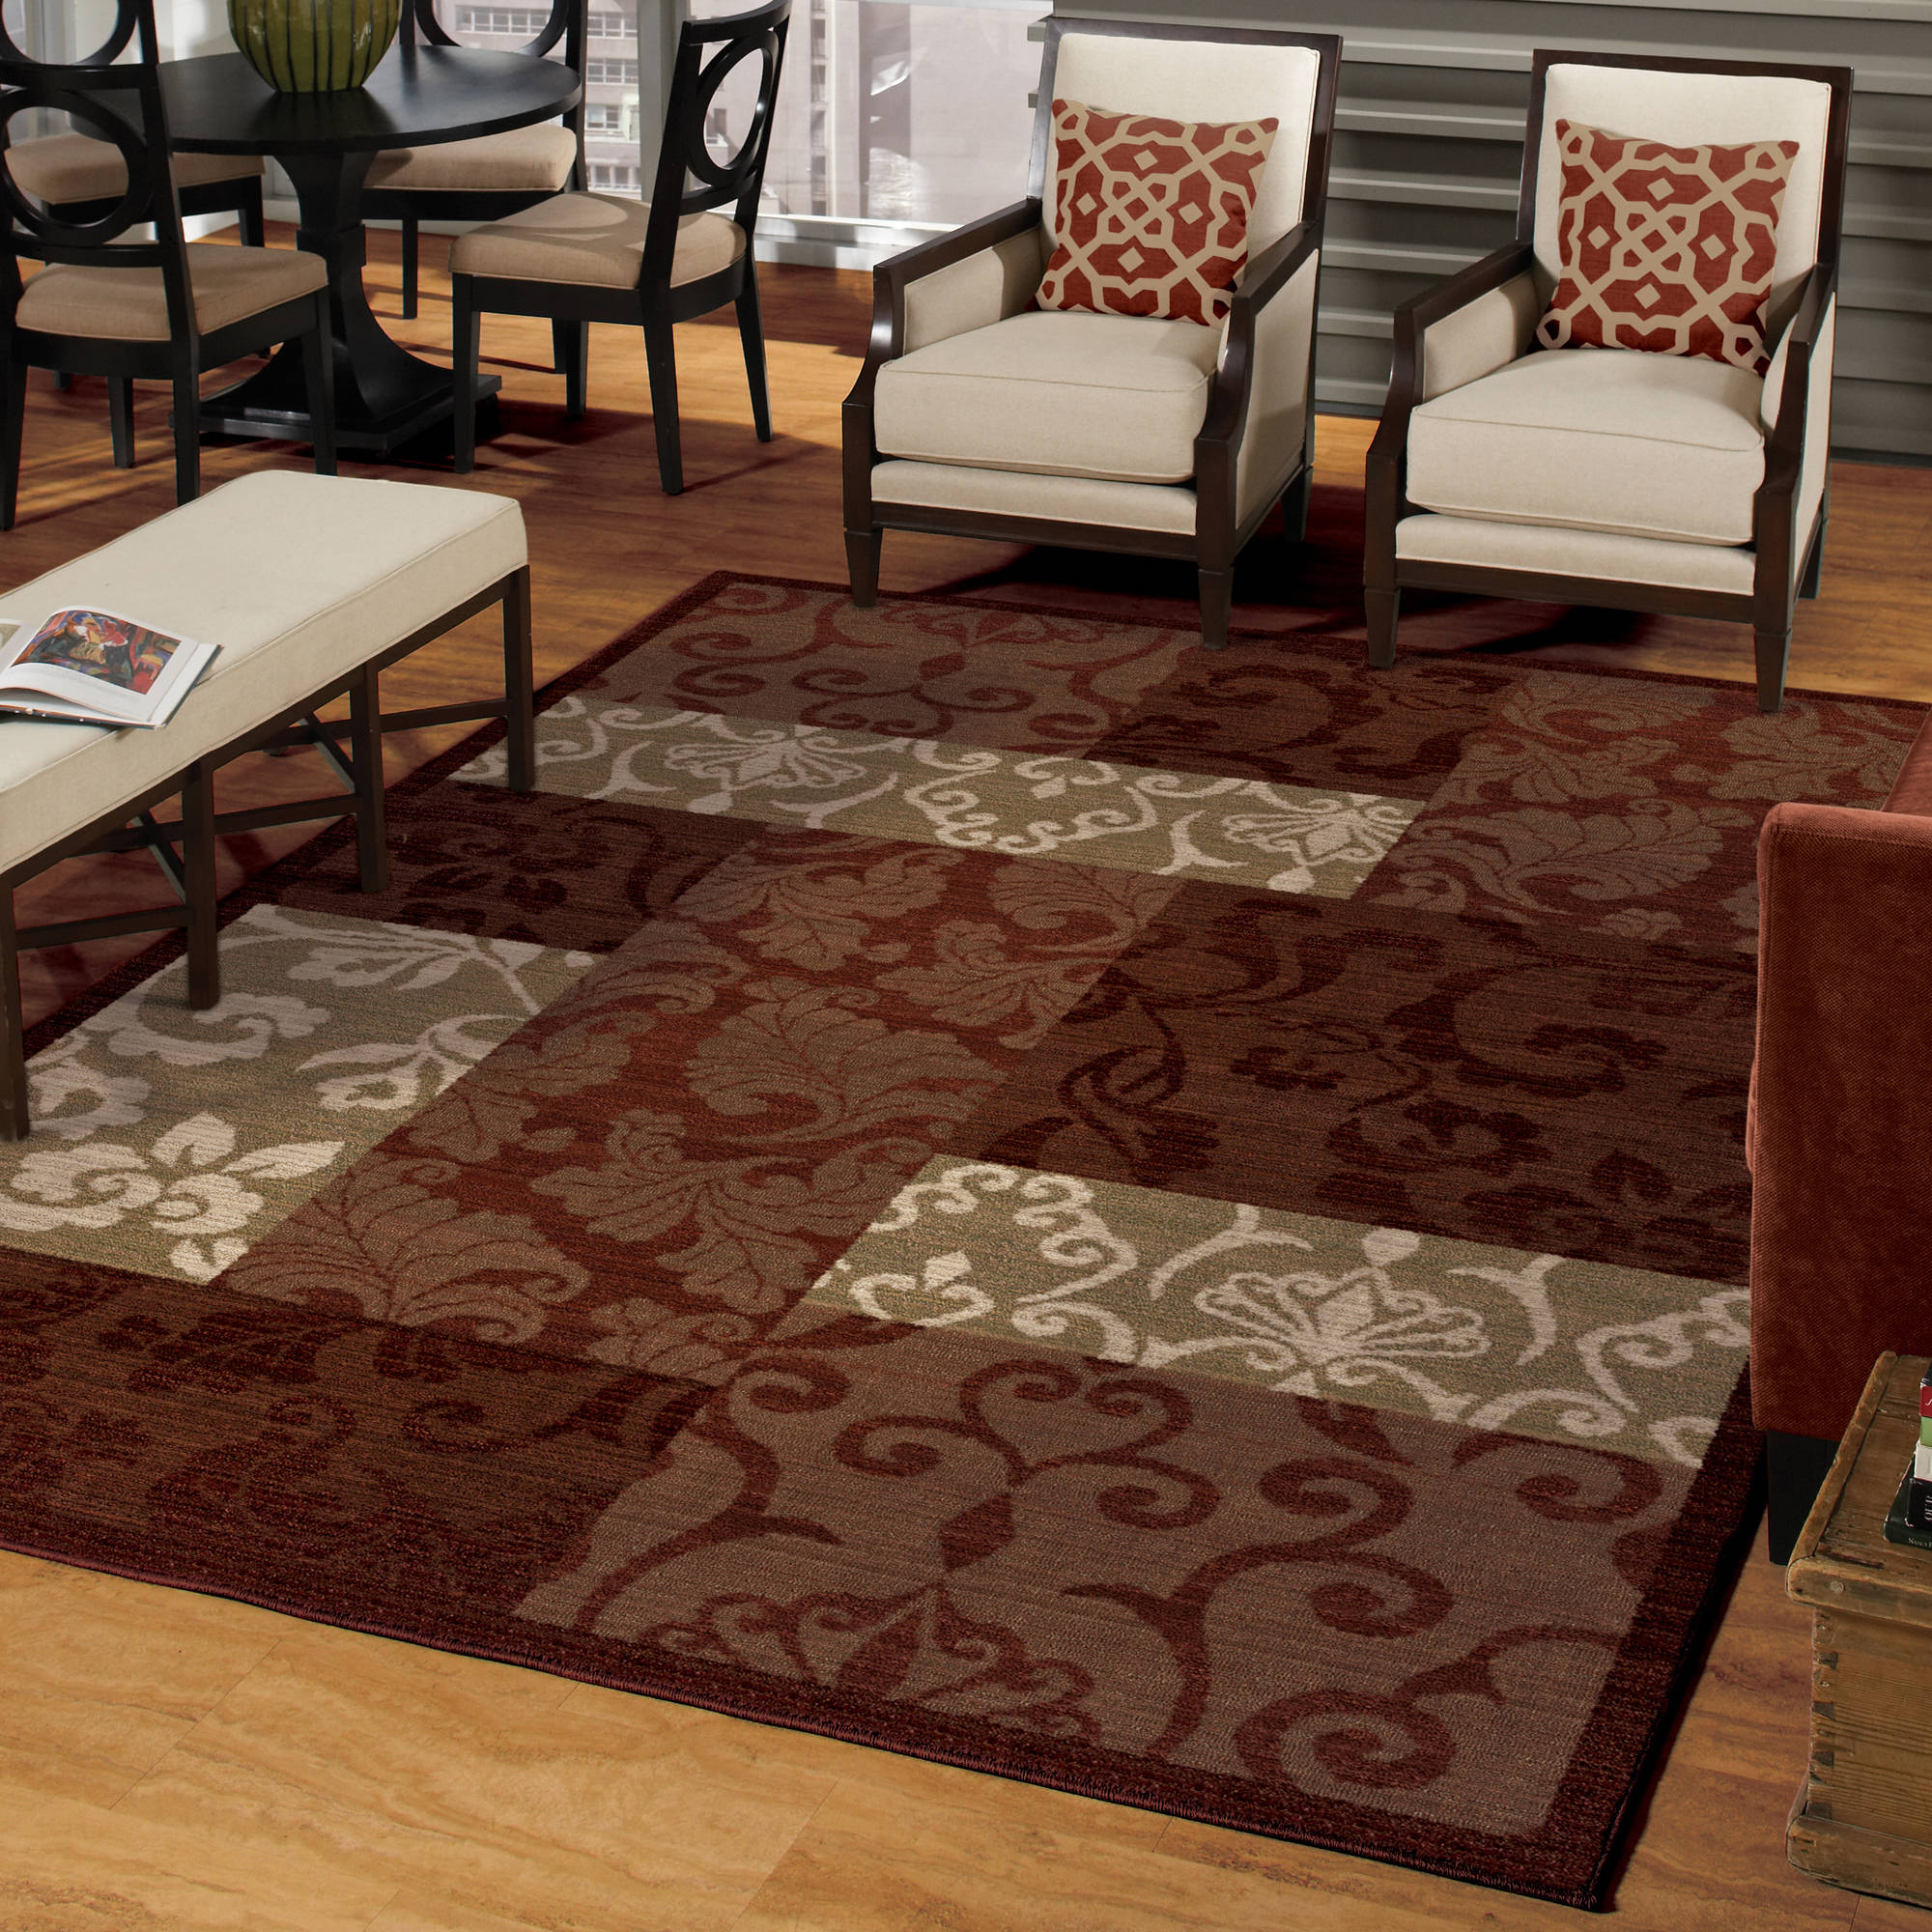 walmart rugs for living room large rustic wall decor better homes and gardens scroll patchwork area rug or runner departments